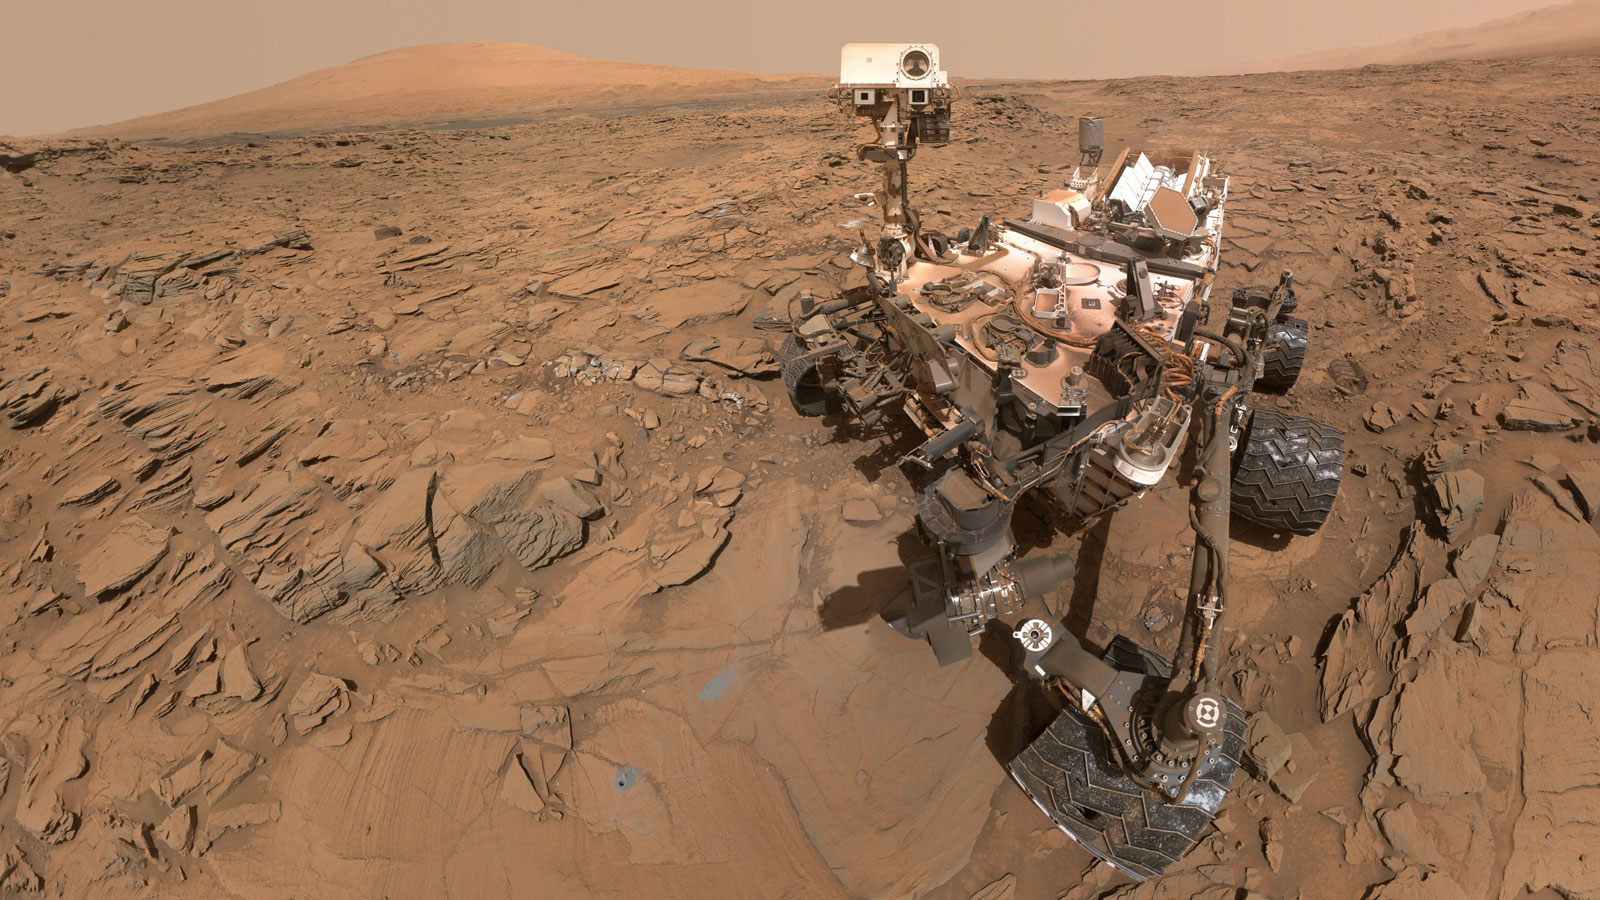 Mars Rover Curiosity at Drill Site, May 2016